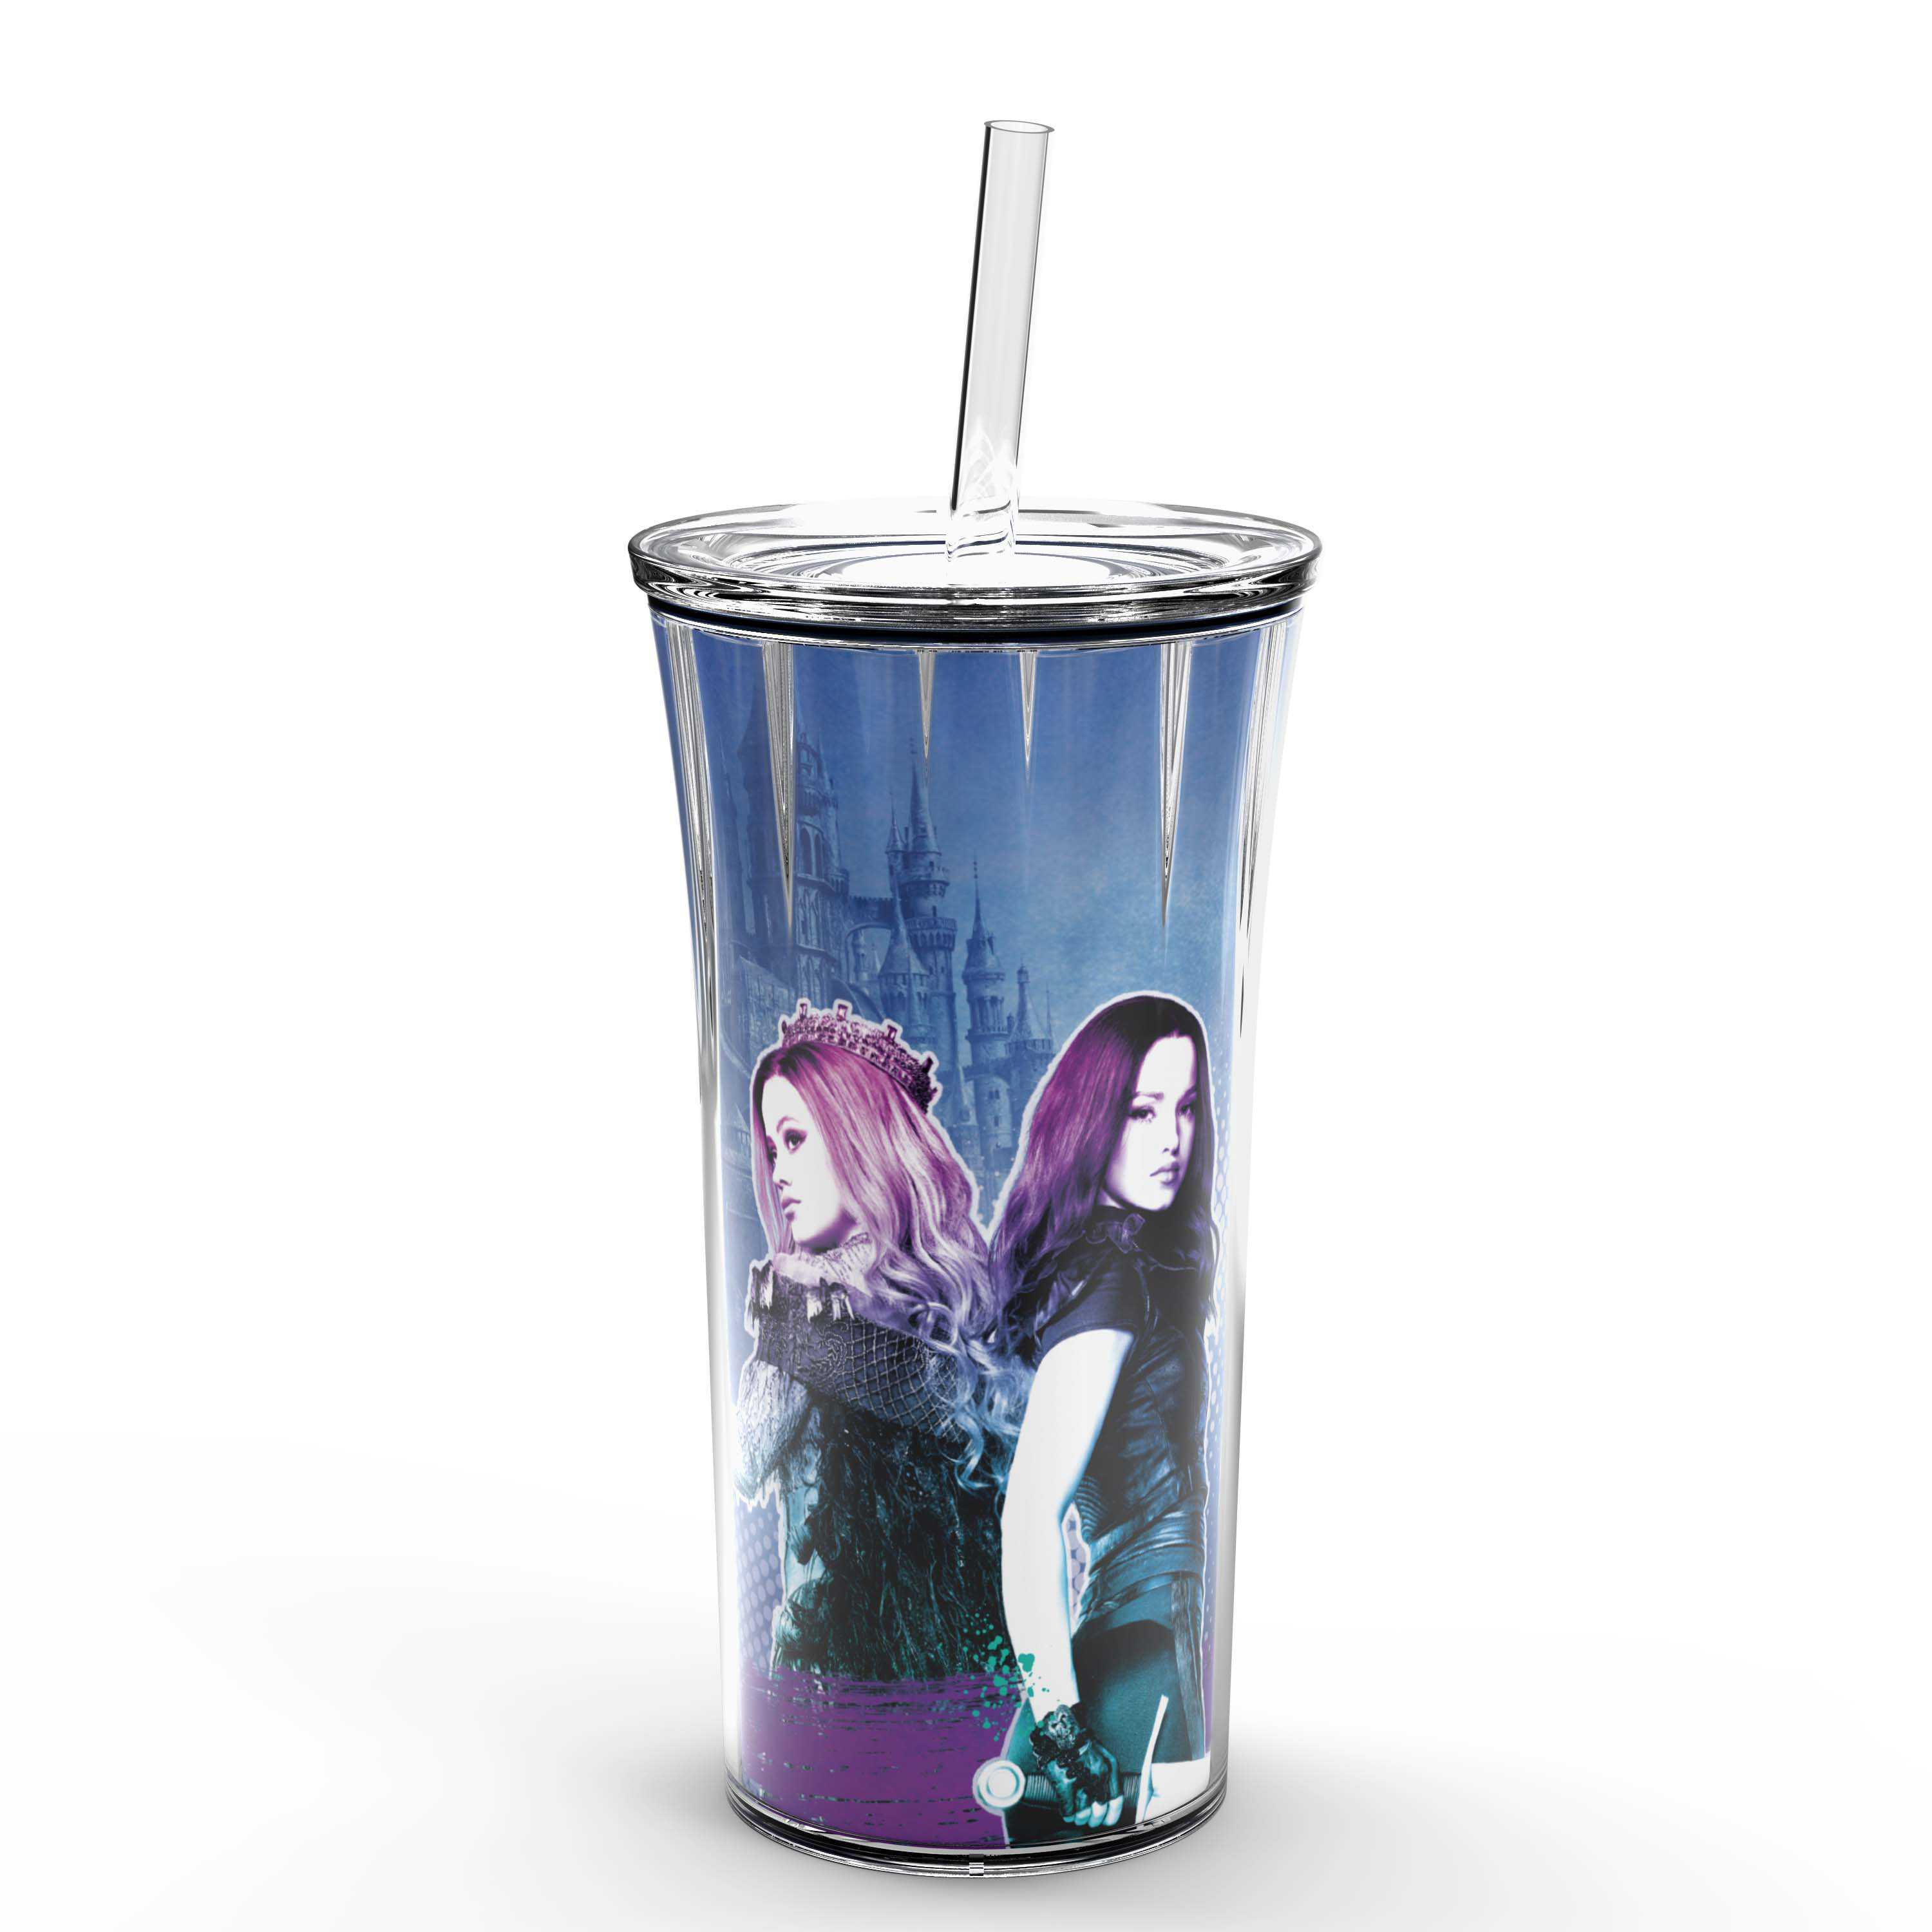 Disney 20 ounce Insulated Tumbler, Descendants 3 slideshow image 1